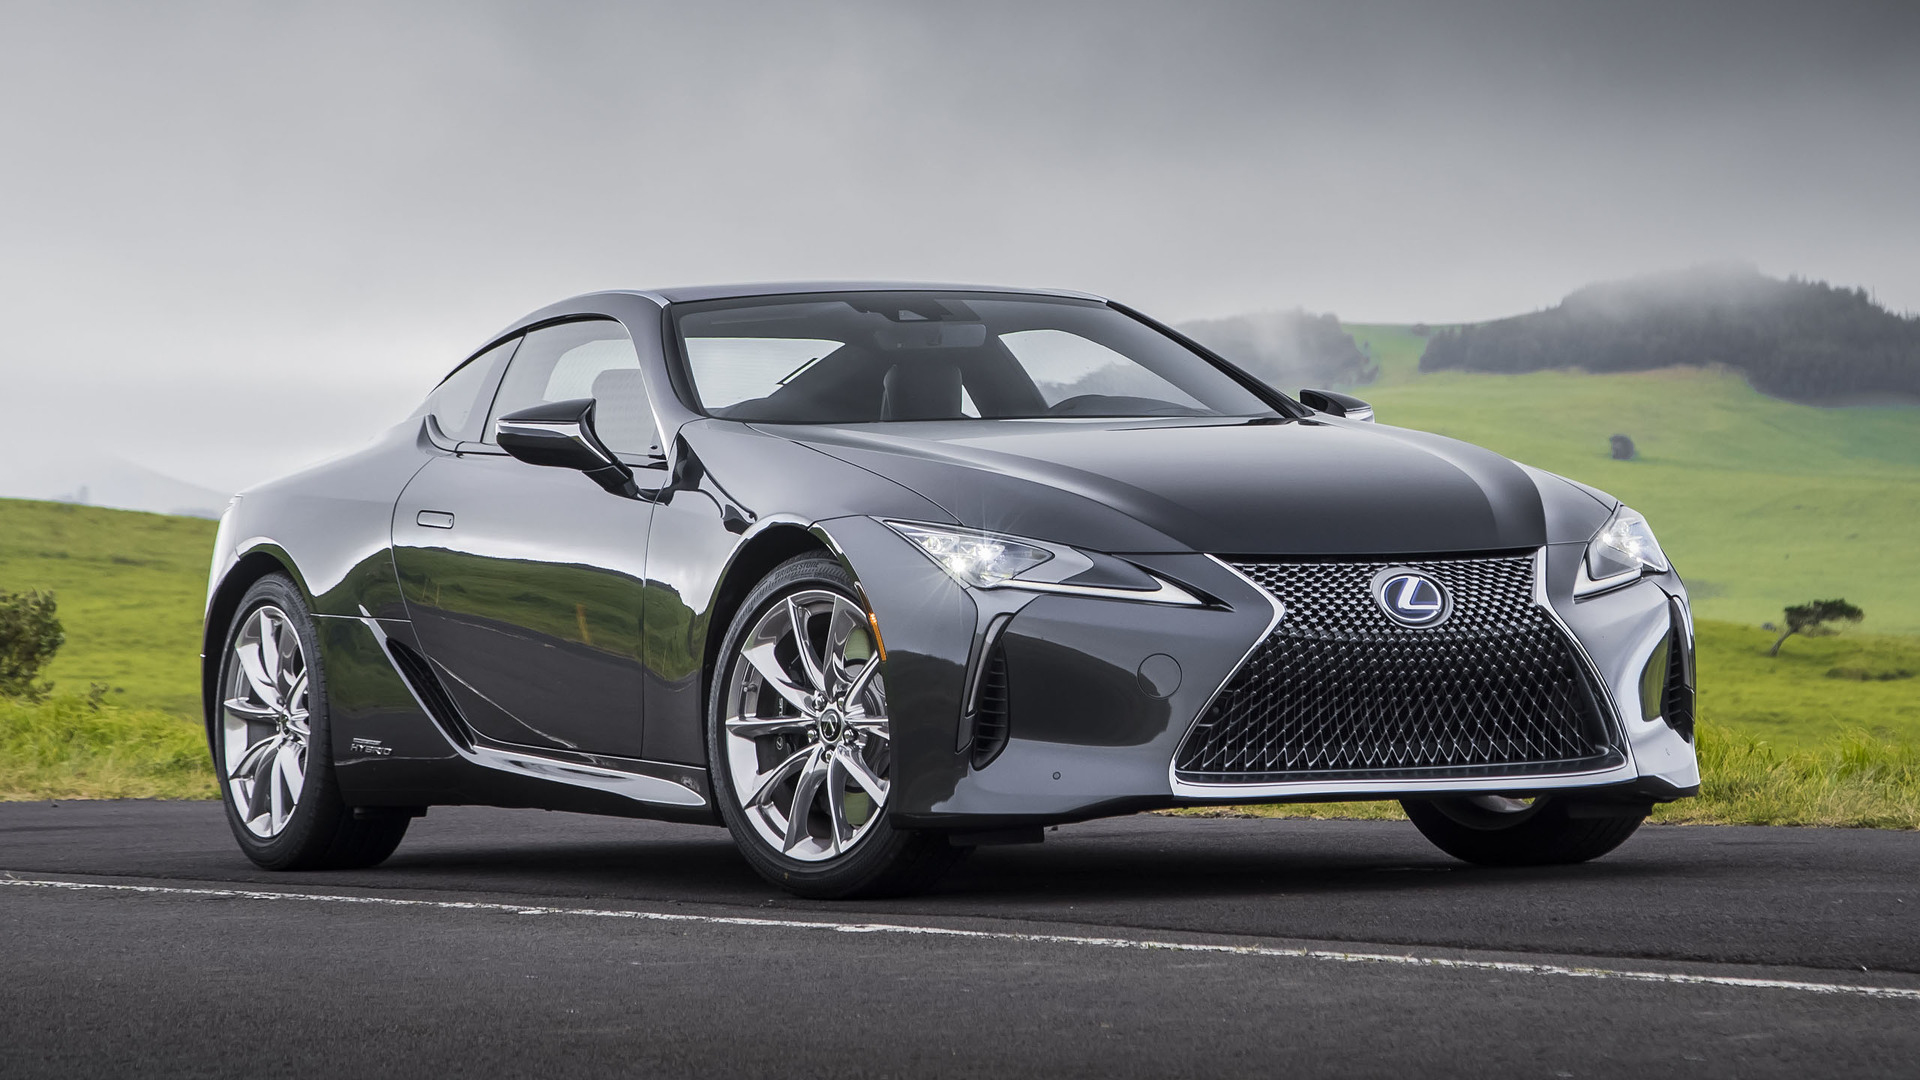 2018 Lexus LC 500h Owners Manual